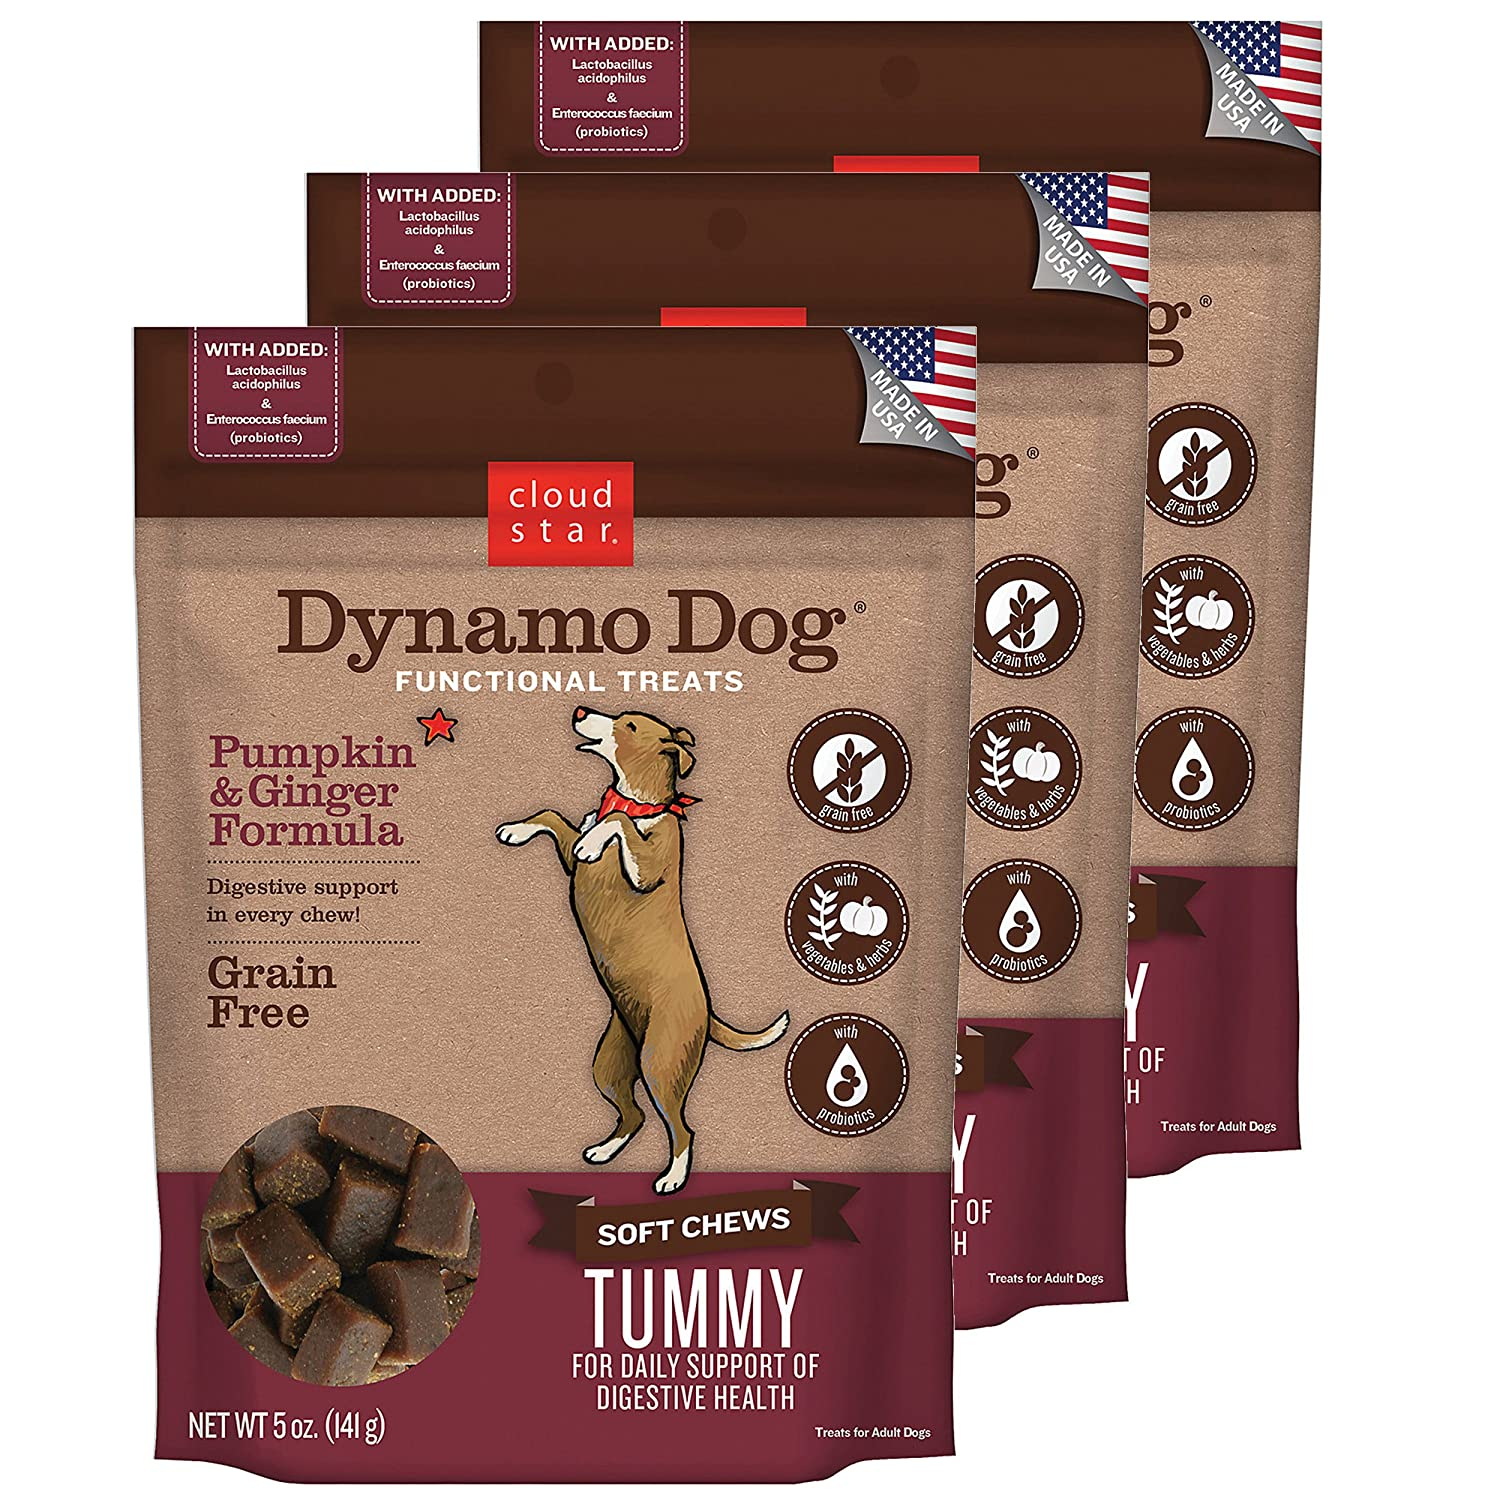 Cloud Star 192959800364 Dynamo Hip & Joint Dog Functional Treats (3 Pack), 5 oz